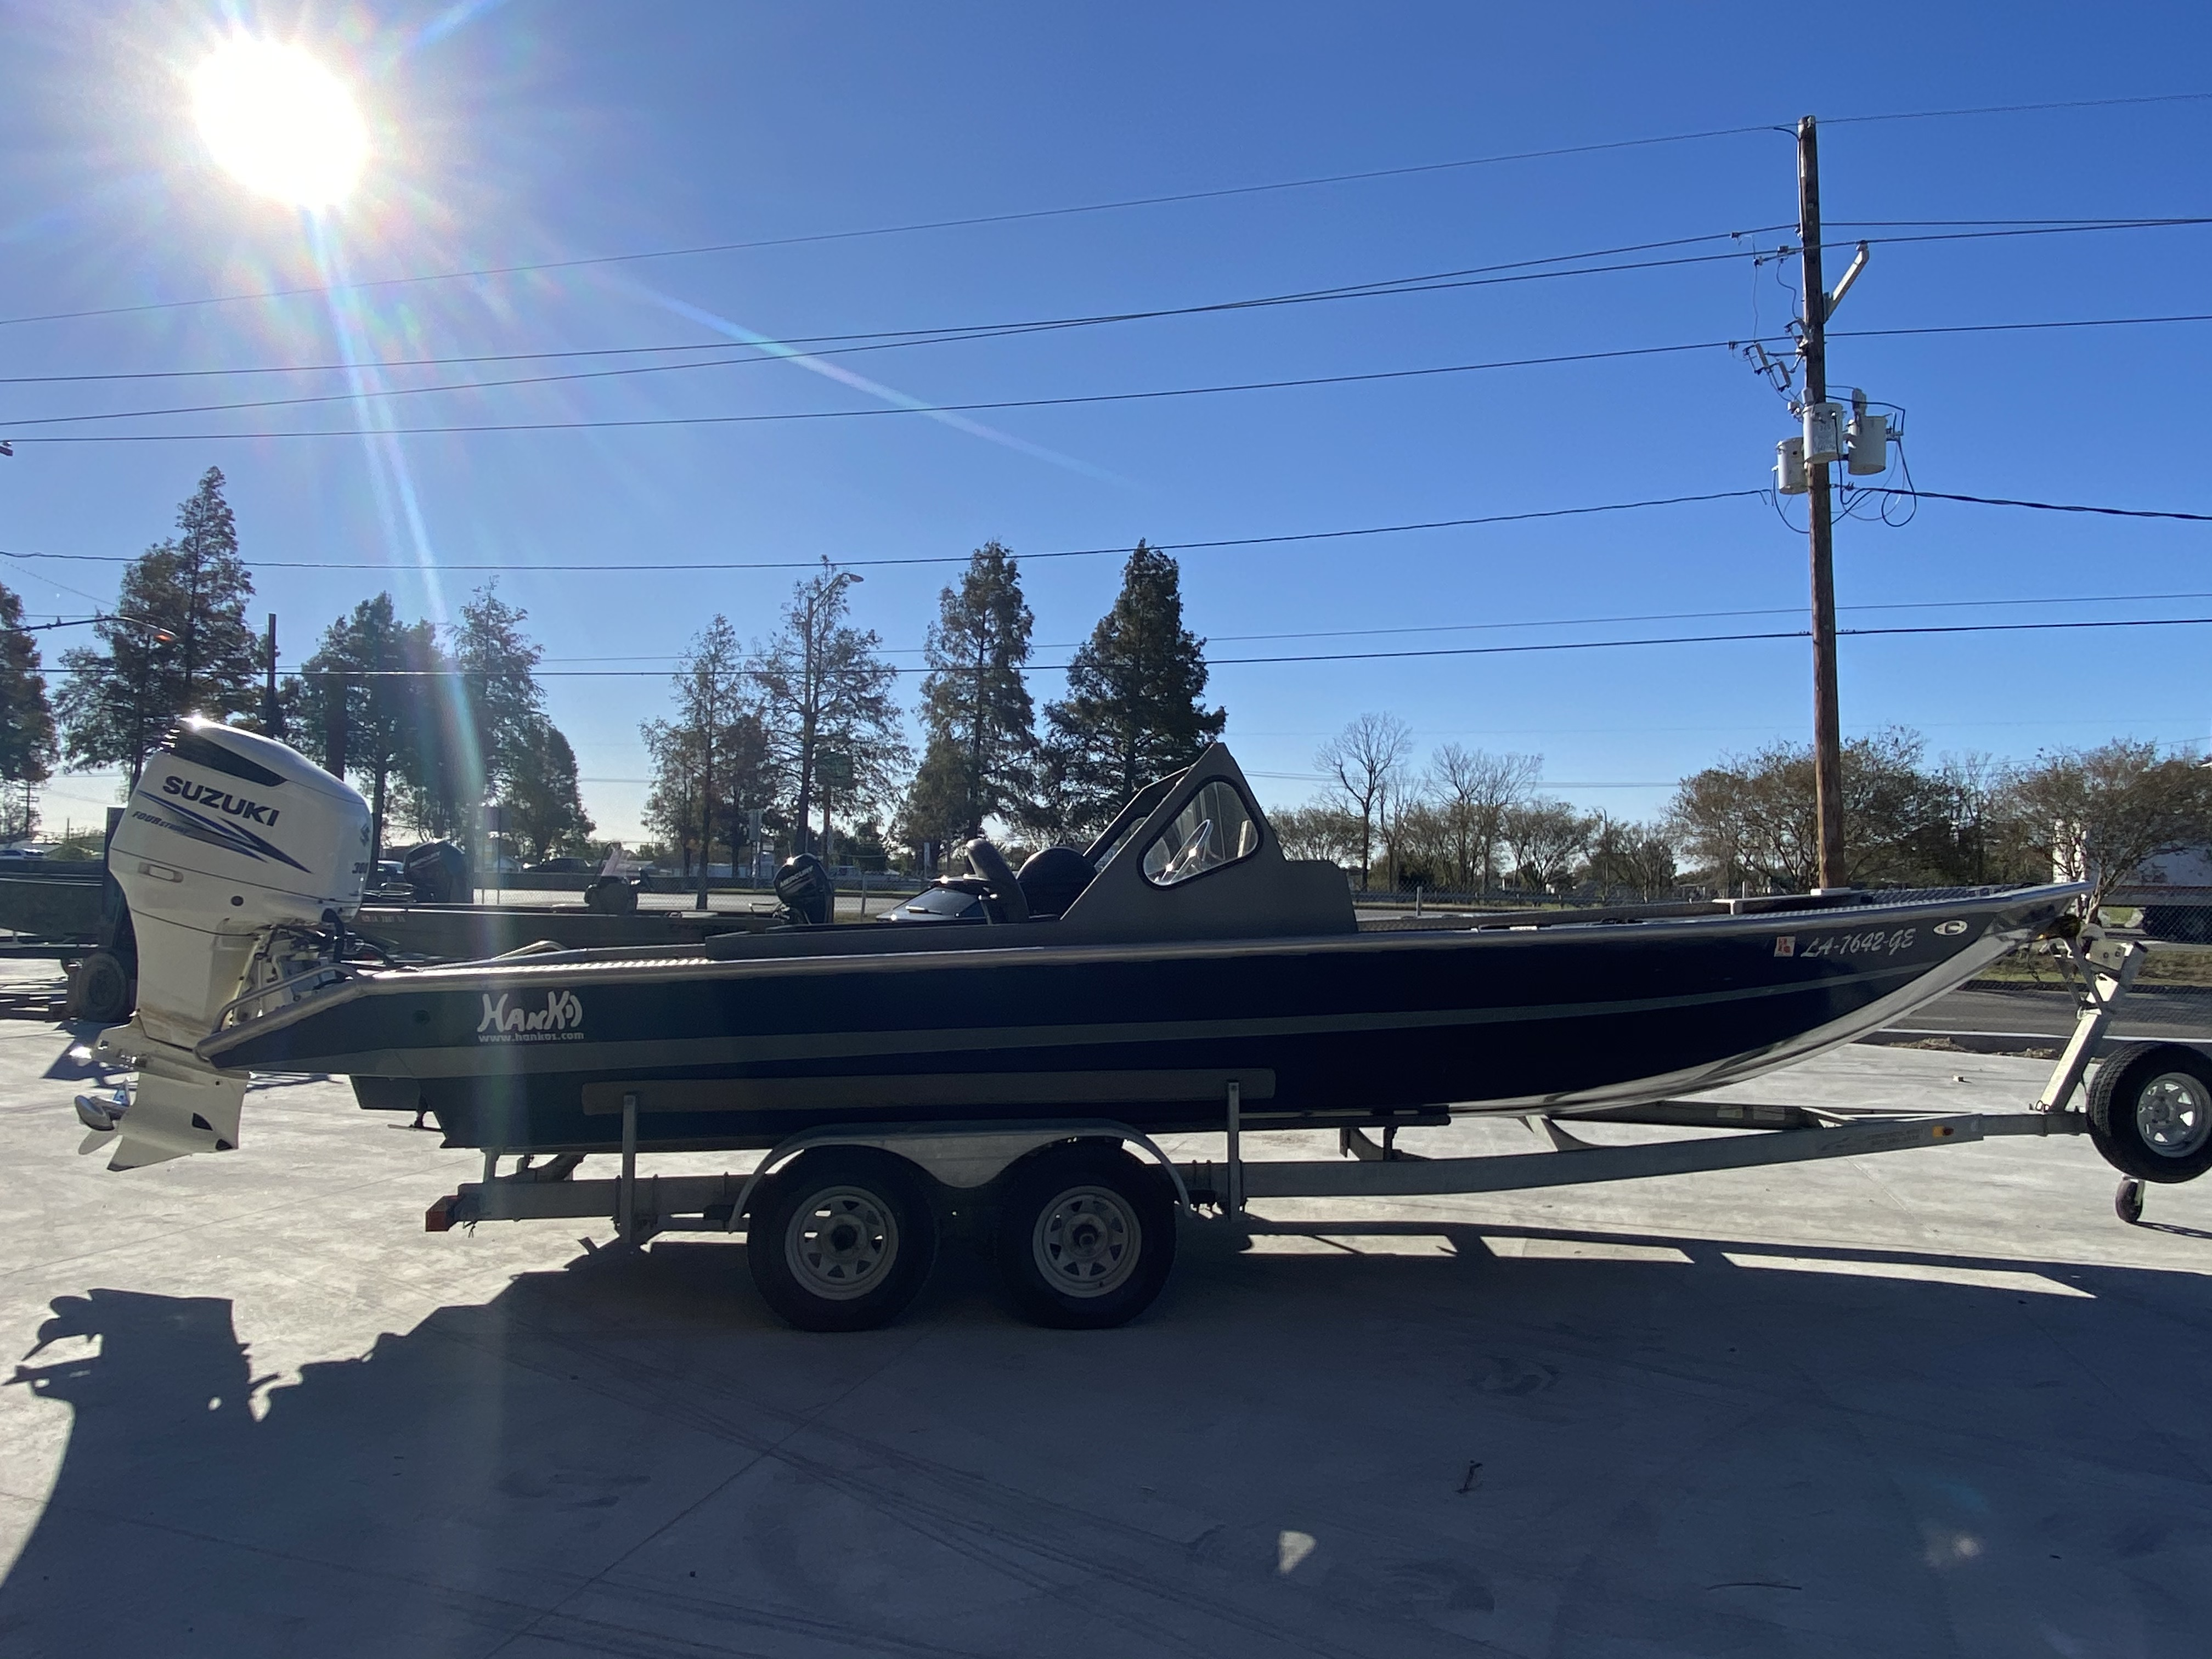 2016 Hanko boat for sale, model of the boat is 24 & Image # 20 of 26